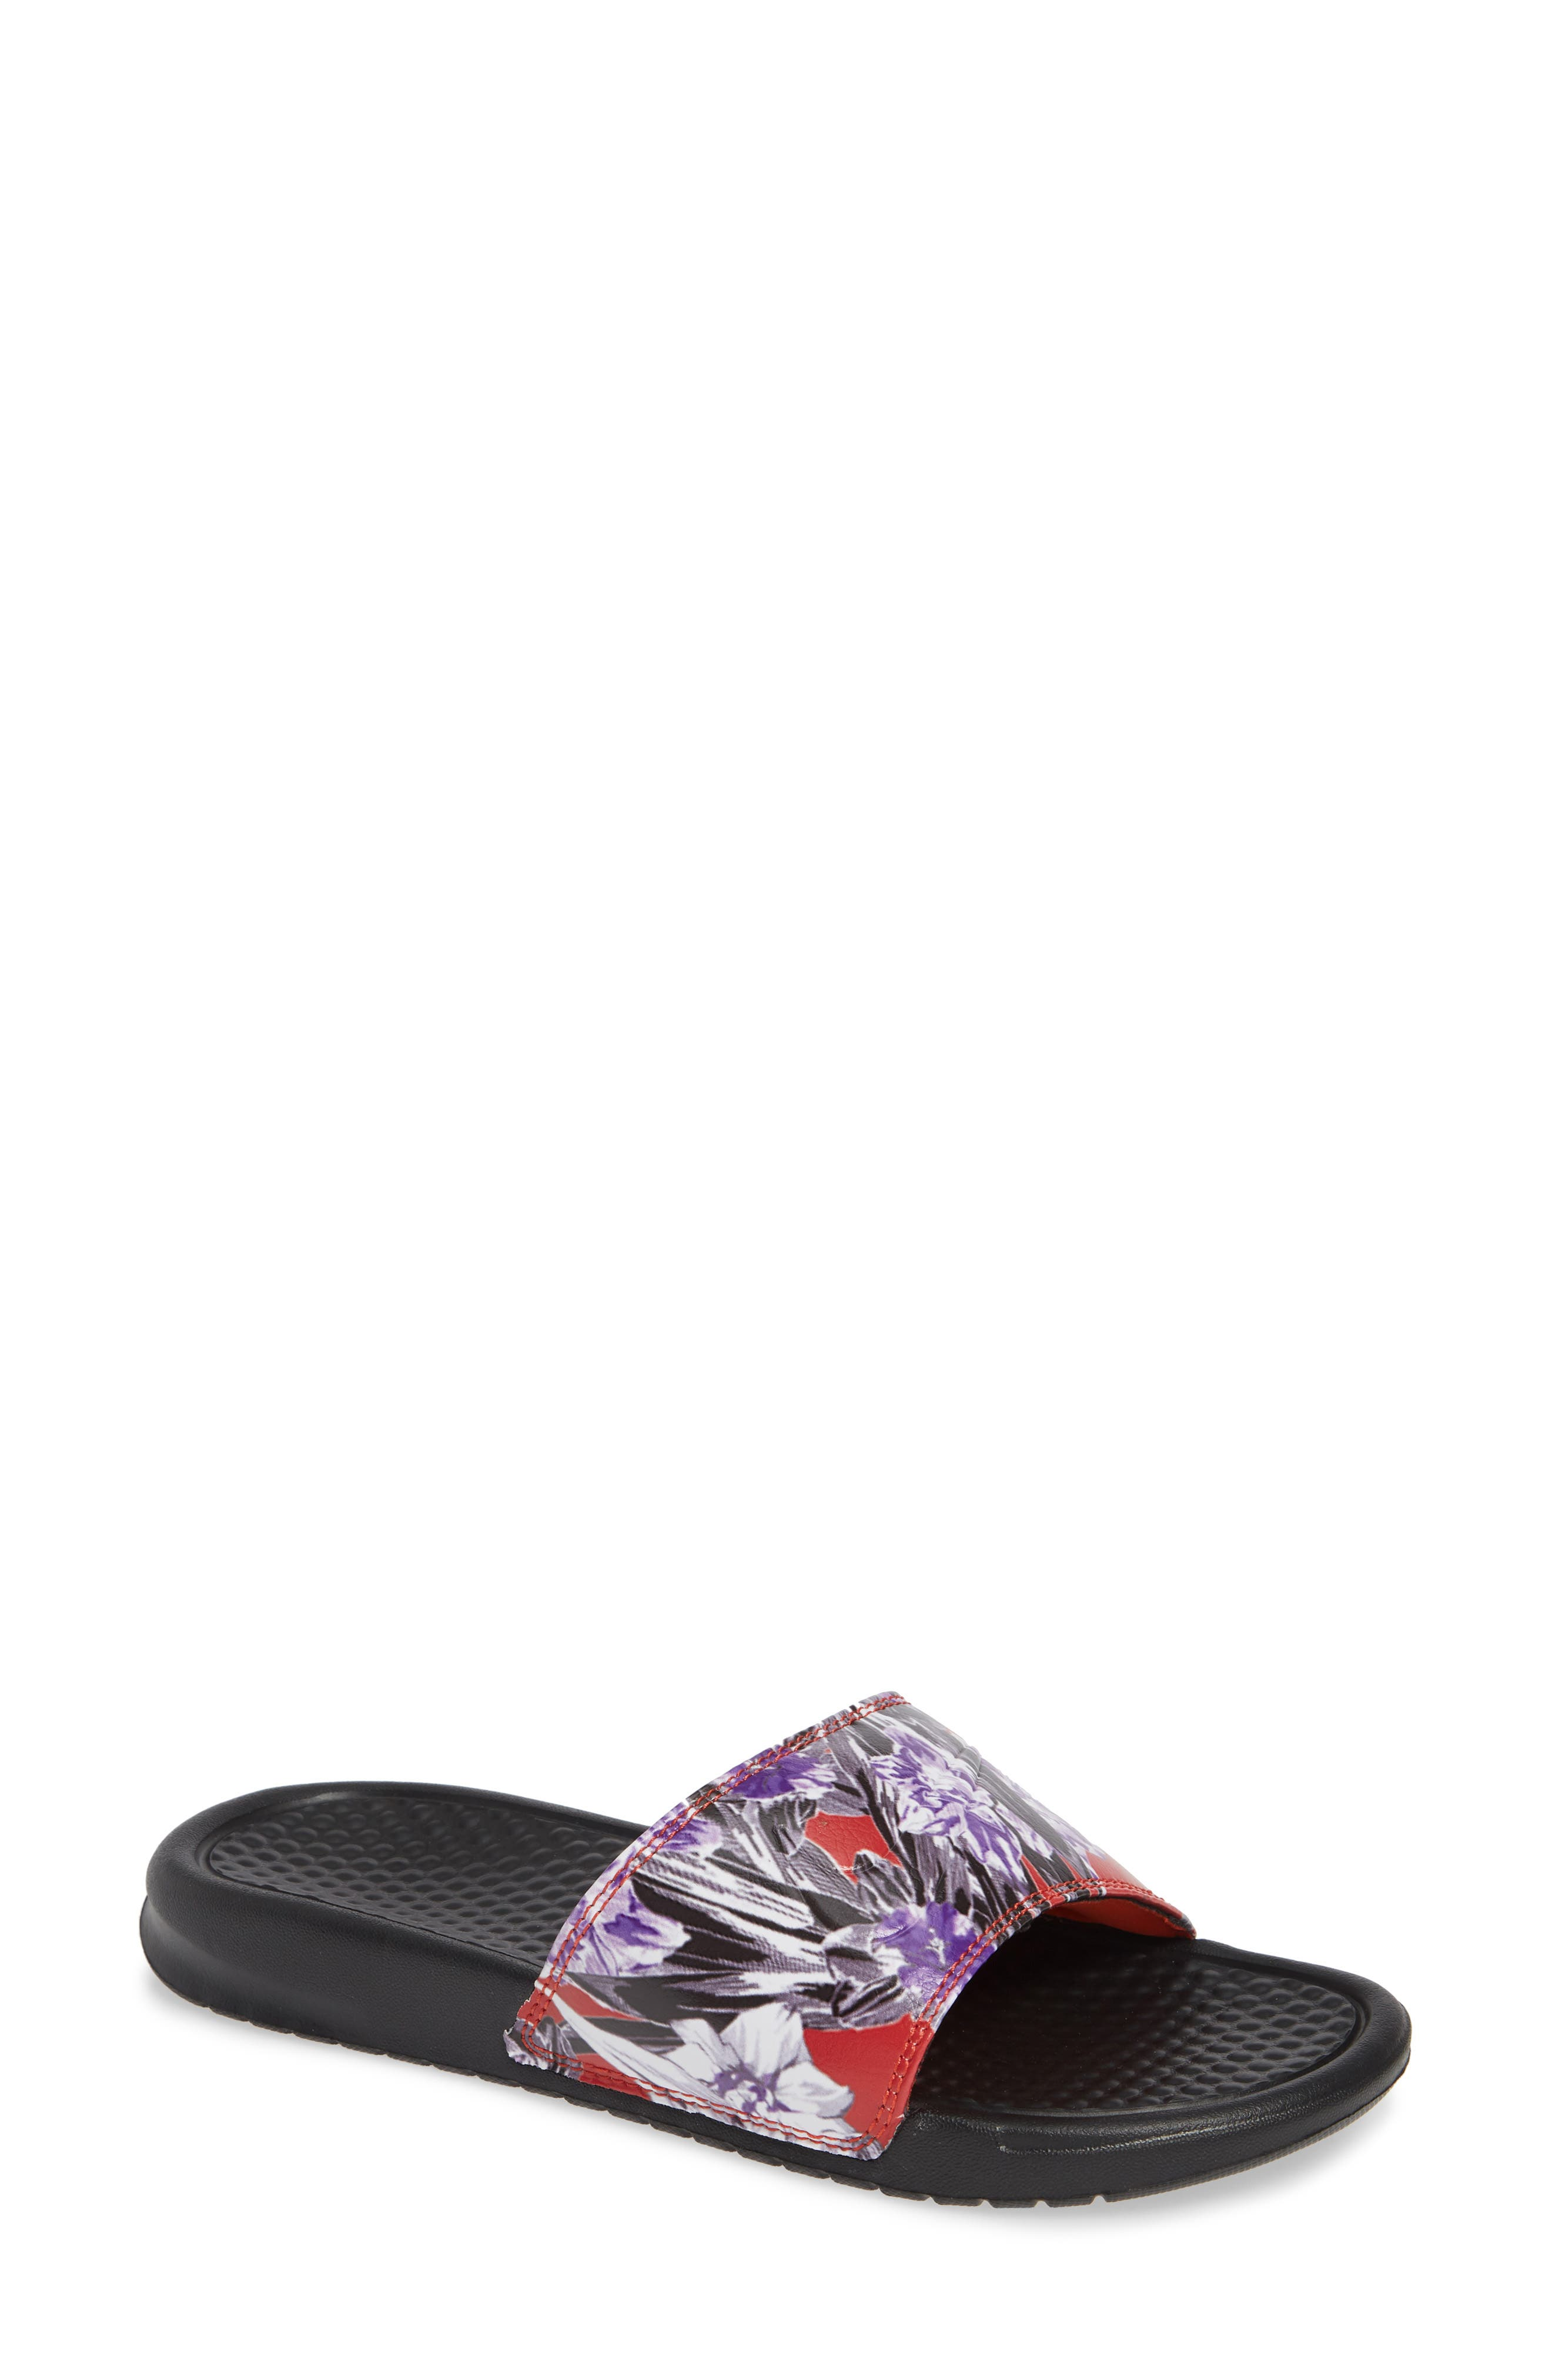 newest 705a4 0005e All Nike   Nordstrom